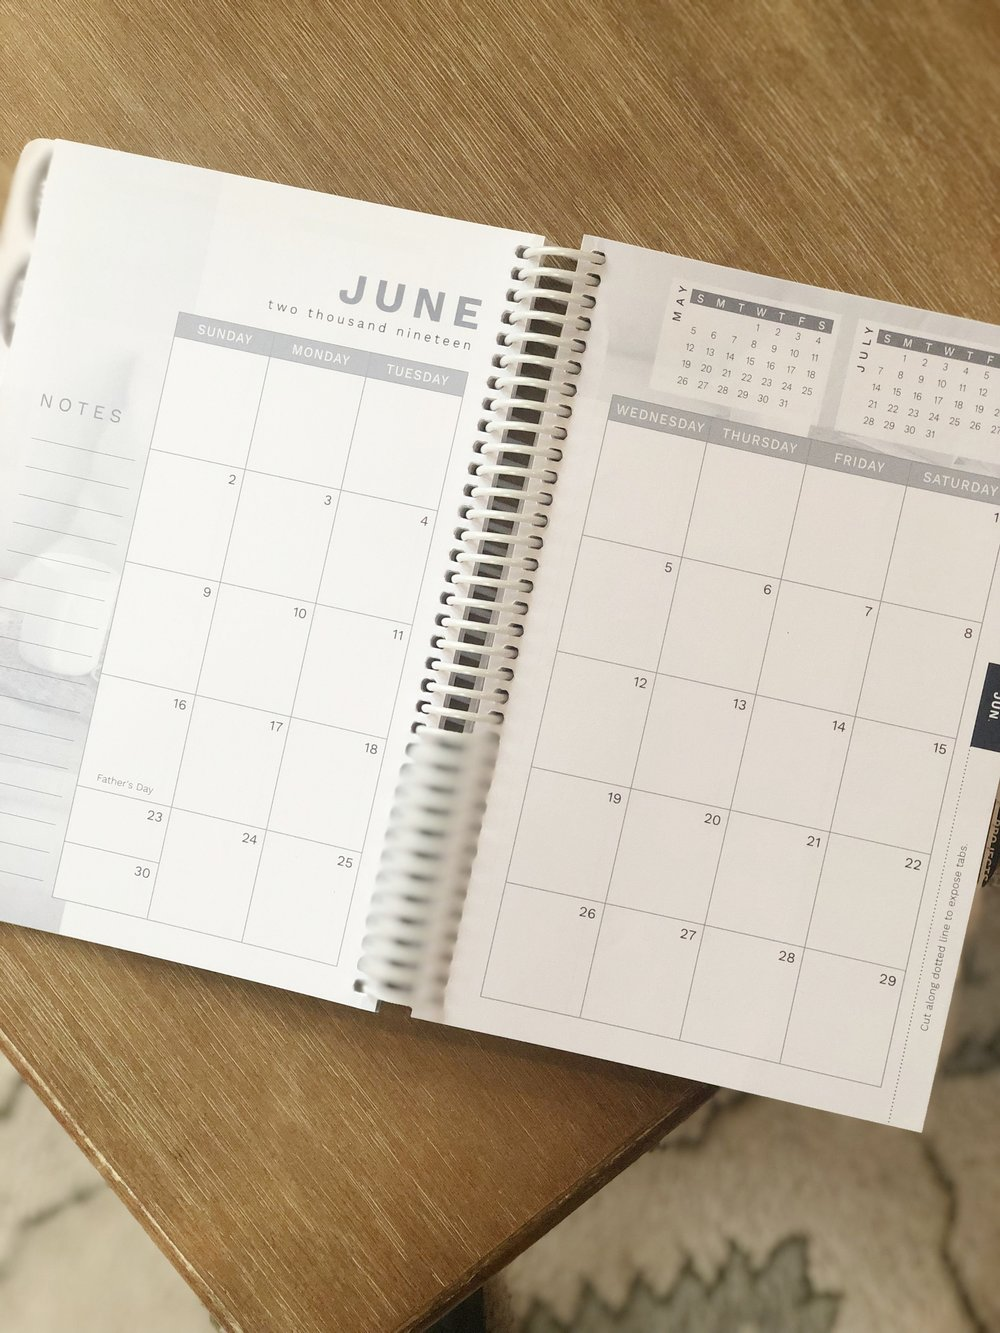 I LOVE a good planner, but it is hard to find one that fits my needs and is affordable! Meet the 2019 homemaker's friend Daily Planner....a great planner to fit even the tightest budget!